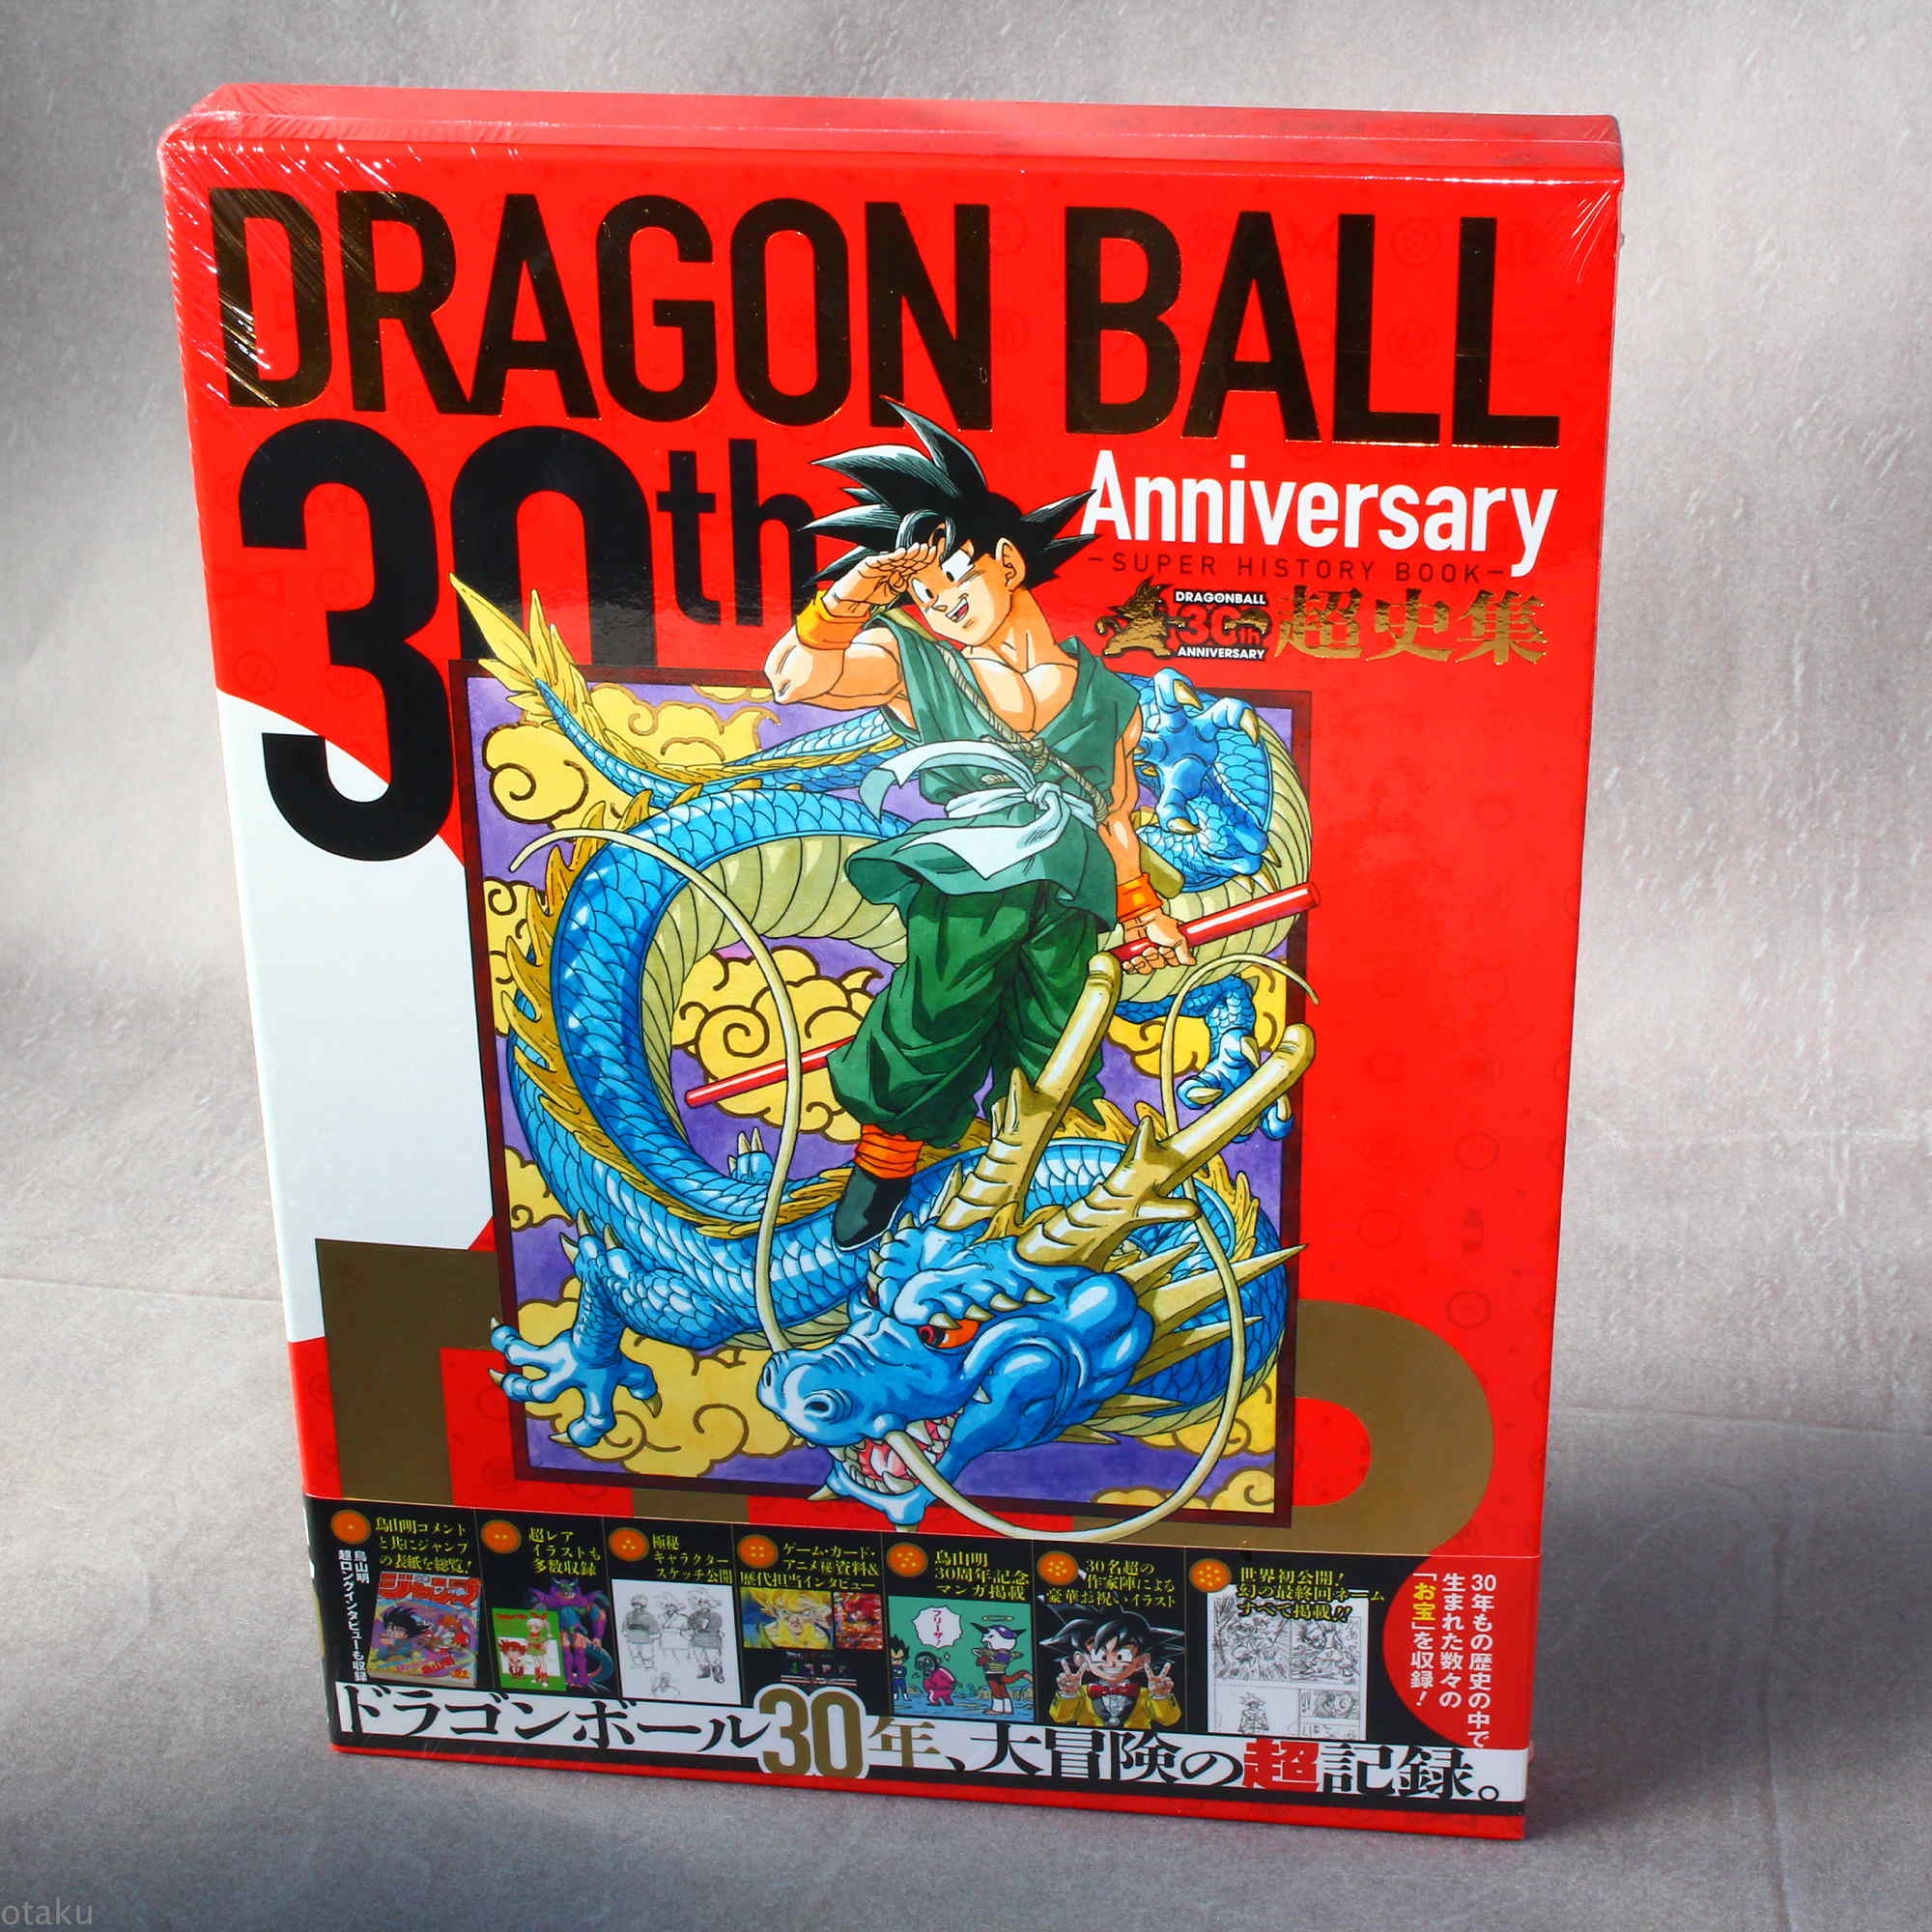 Dragon Ball 30th Anniversary book